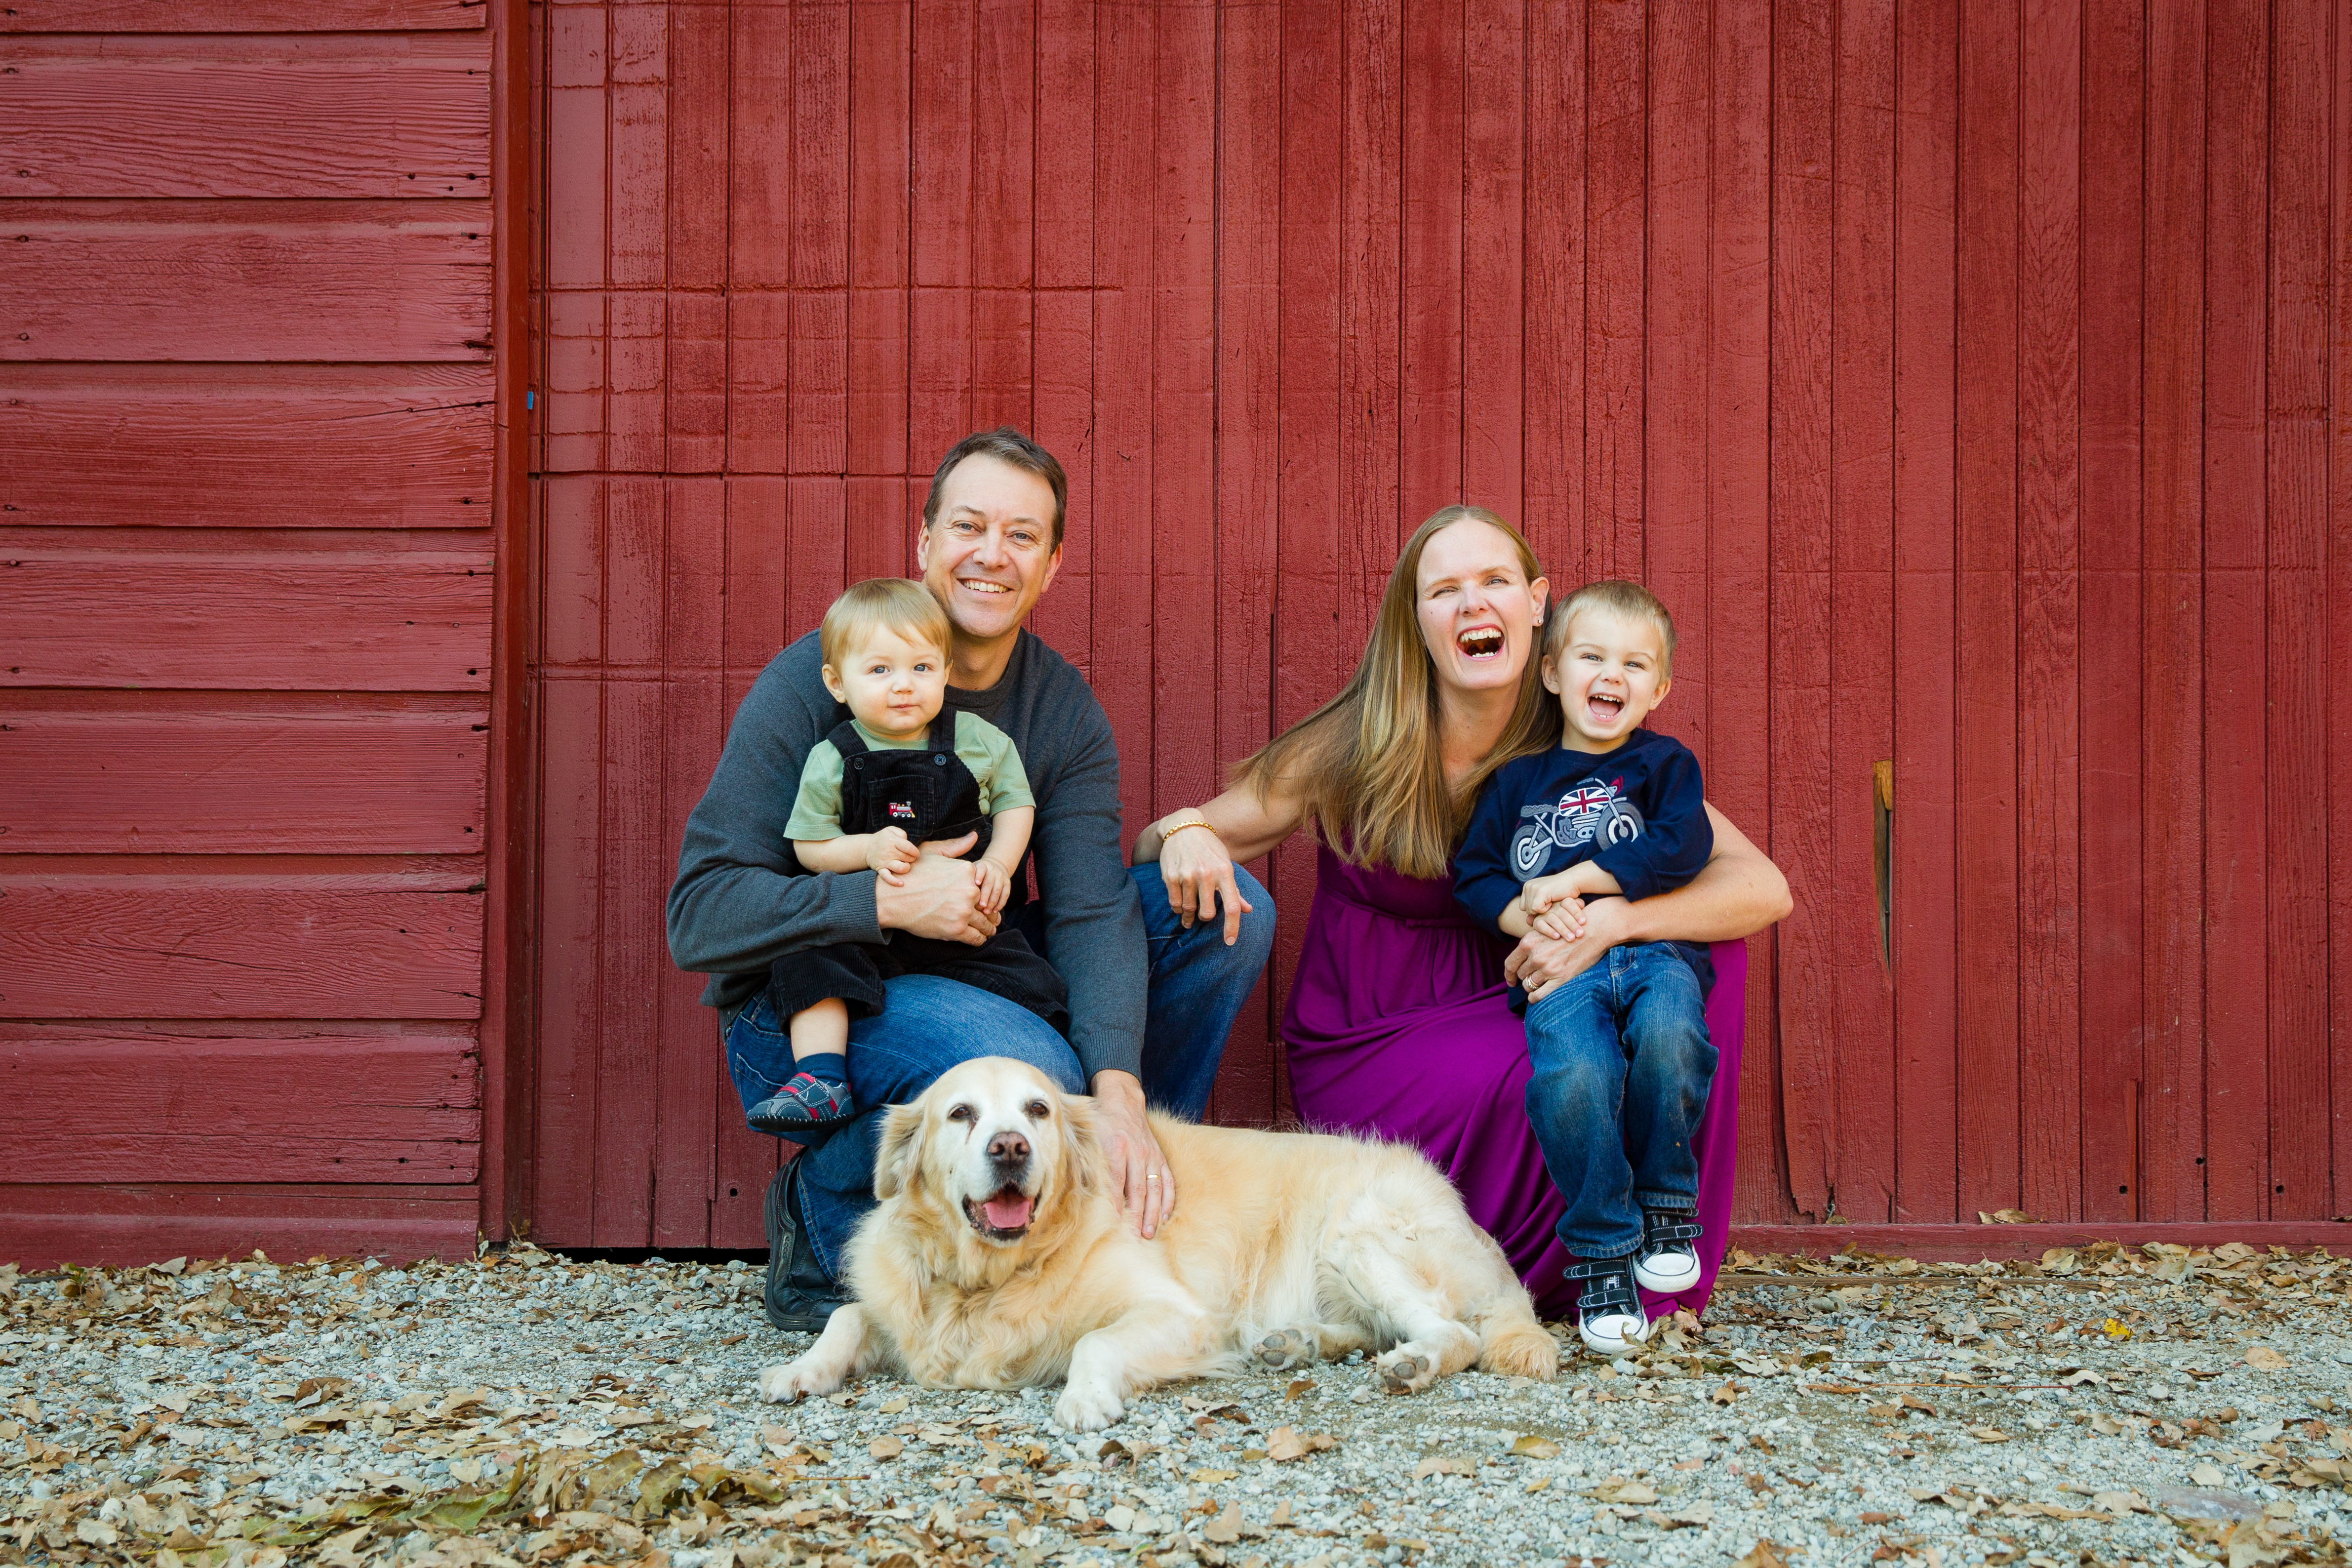 5 Tips For Making Your Family Photos a Piece of Cake This Fall!